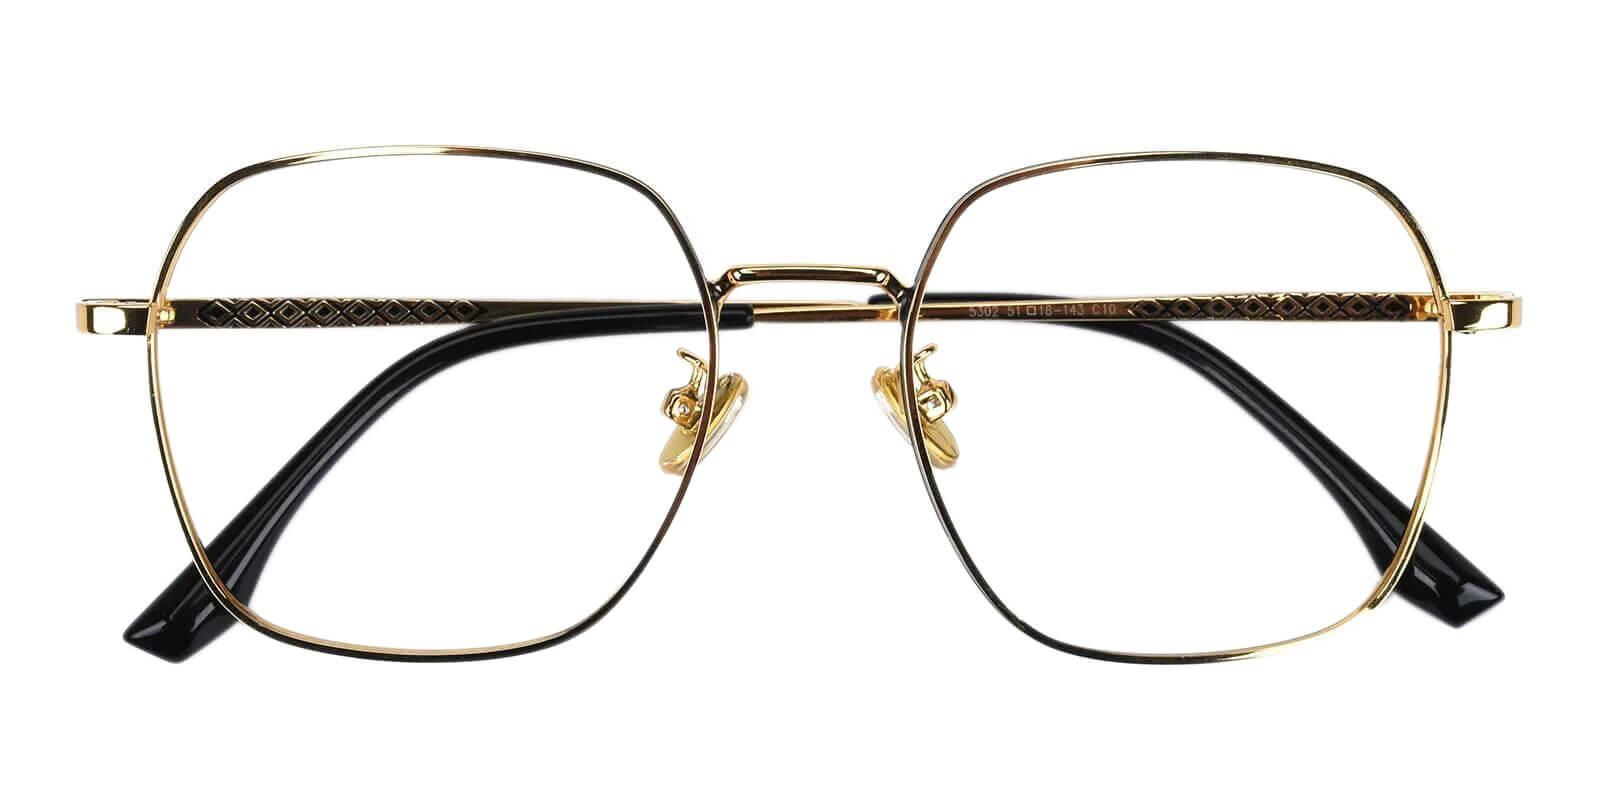 Thelma Gold Metal Eyeglasses , NosePads , SpringHinges Frames from ABBE Glasses